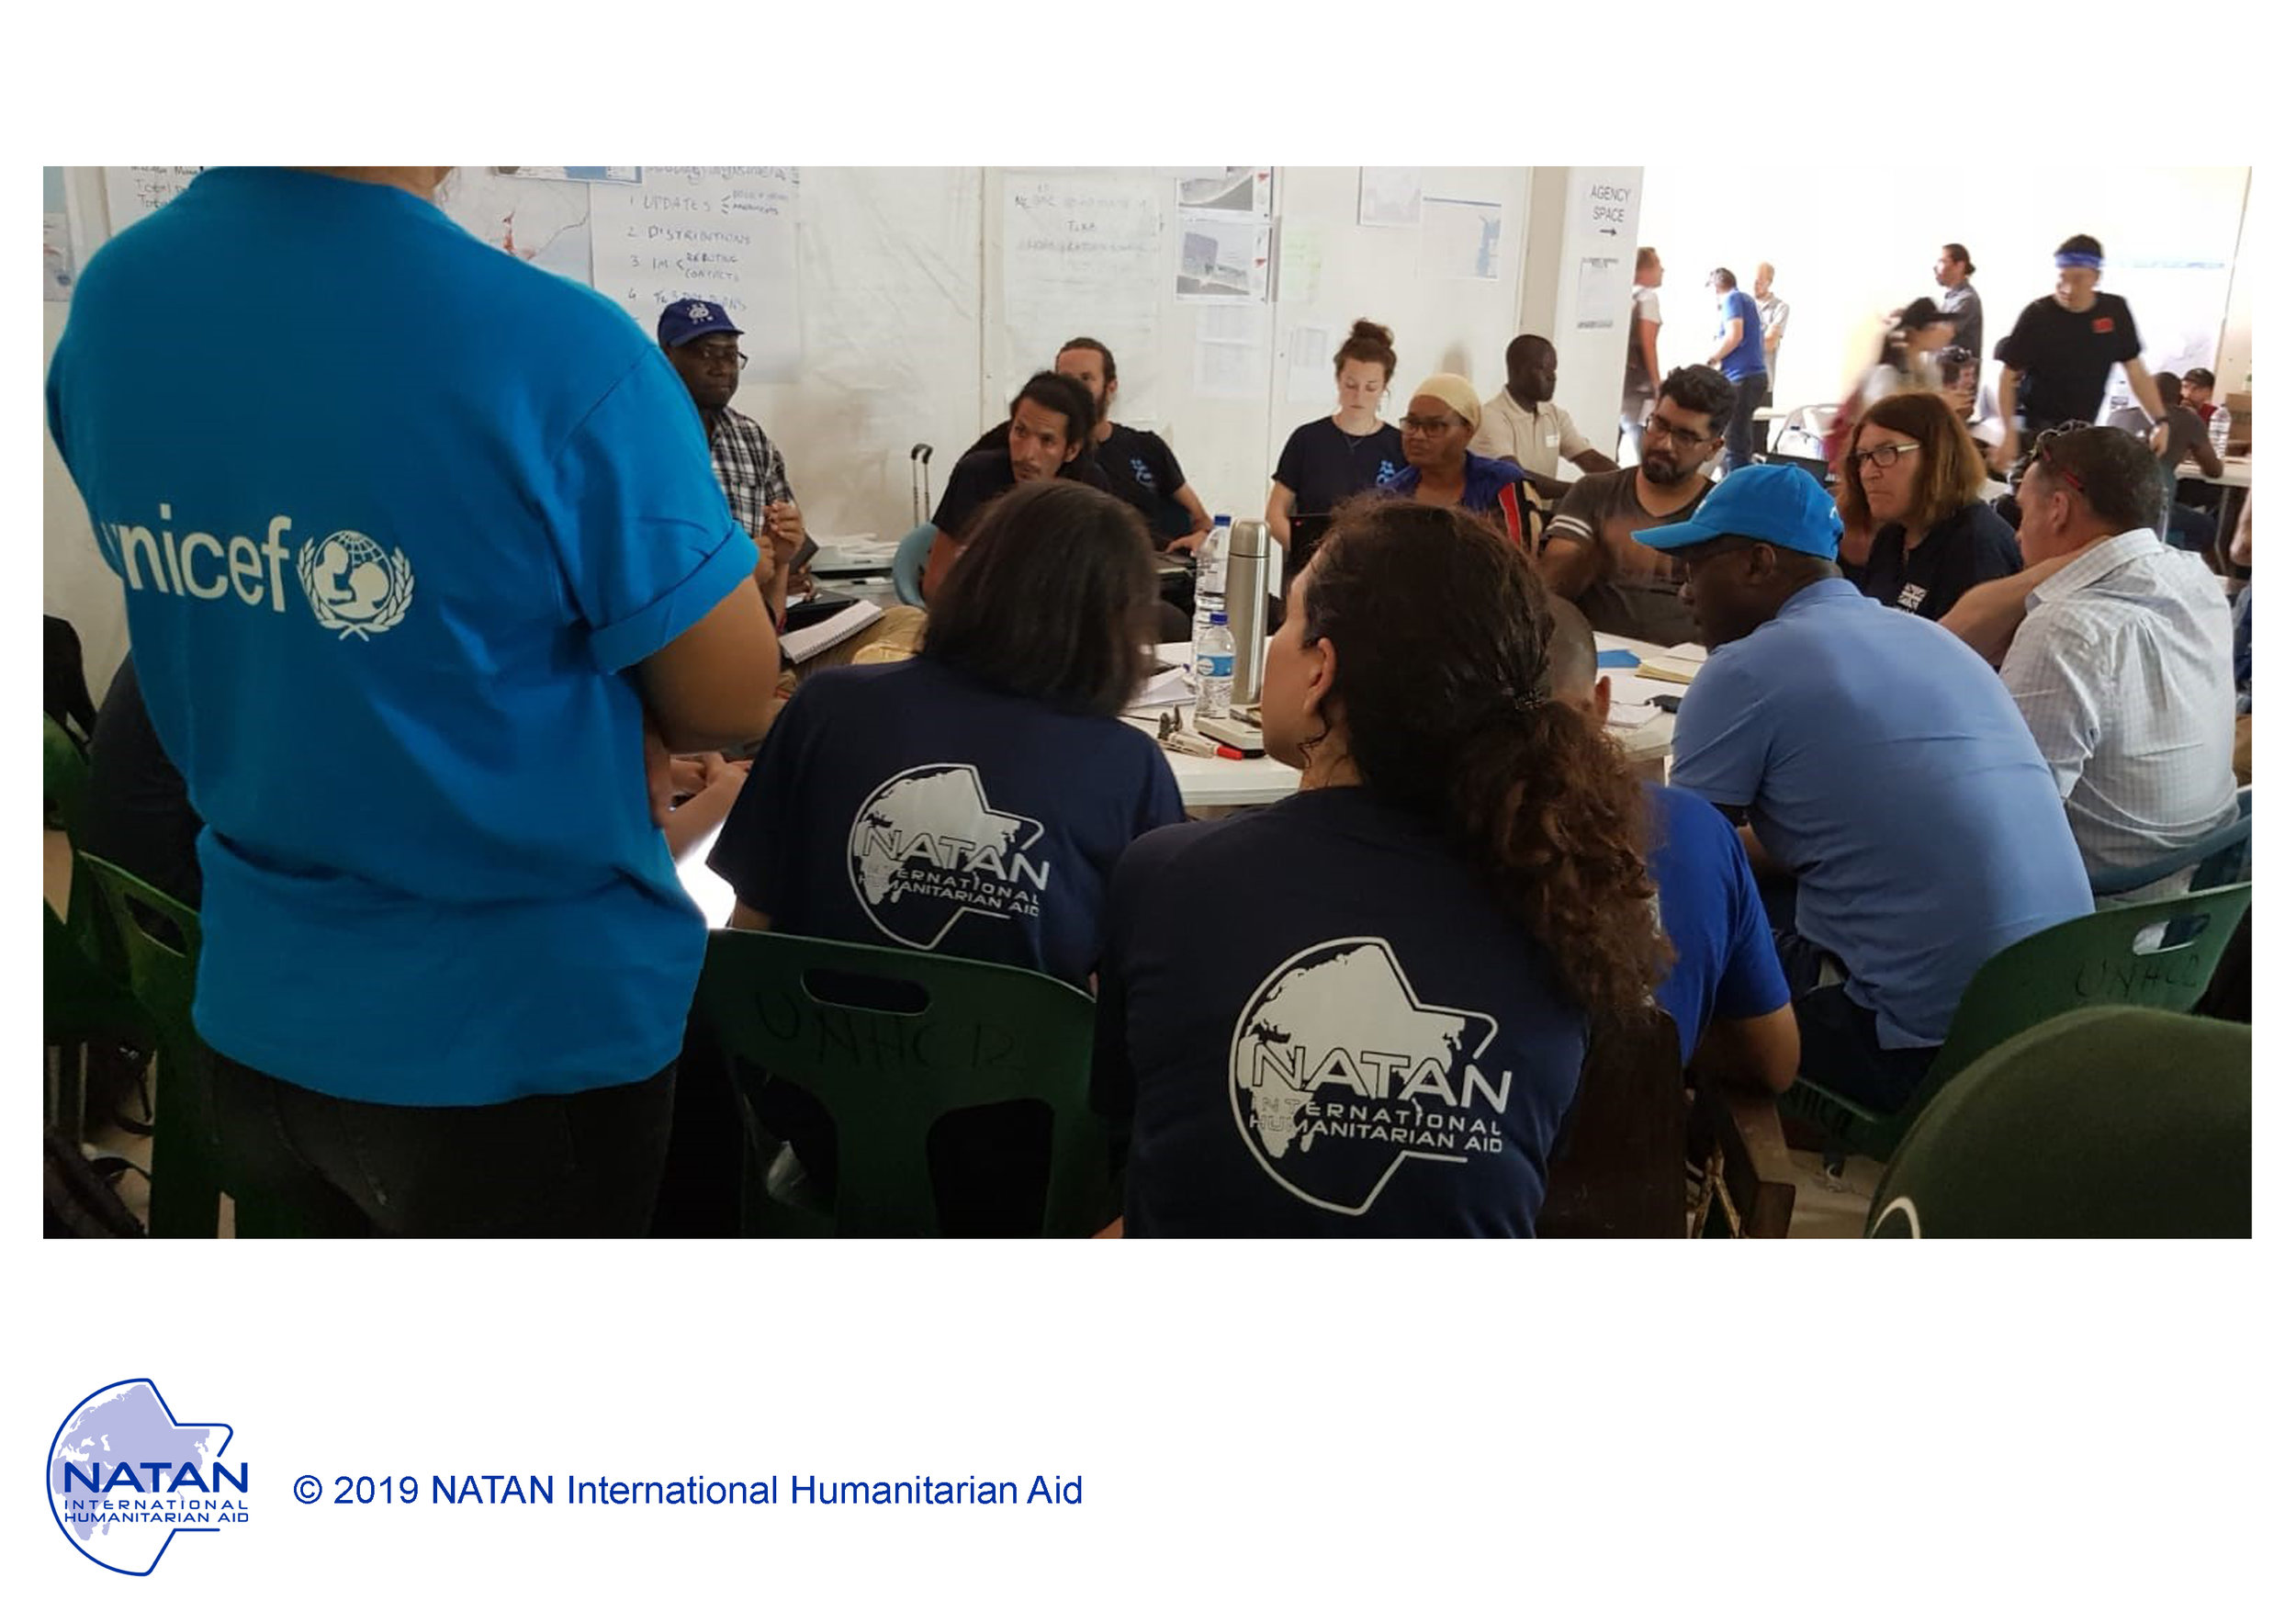 mozambique 2019 - collaboration: NATAN team members participate in daily briefing for all aid organizations in the emergency operations center set up by the un following cyclone idai